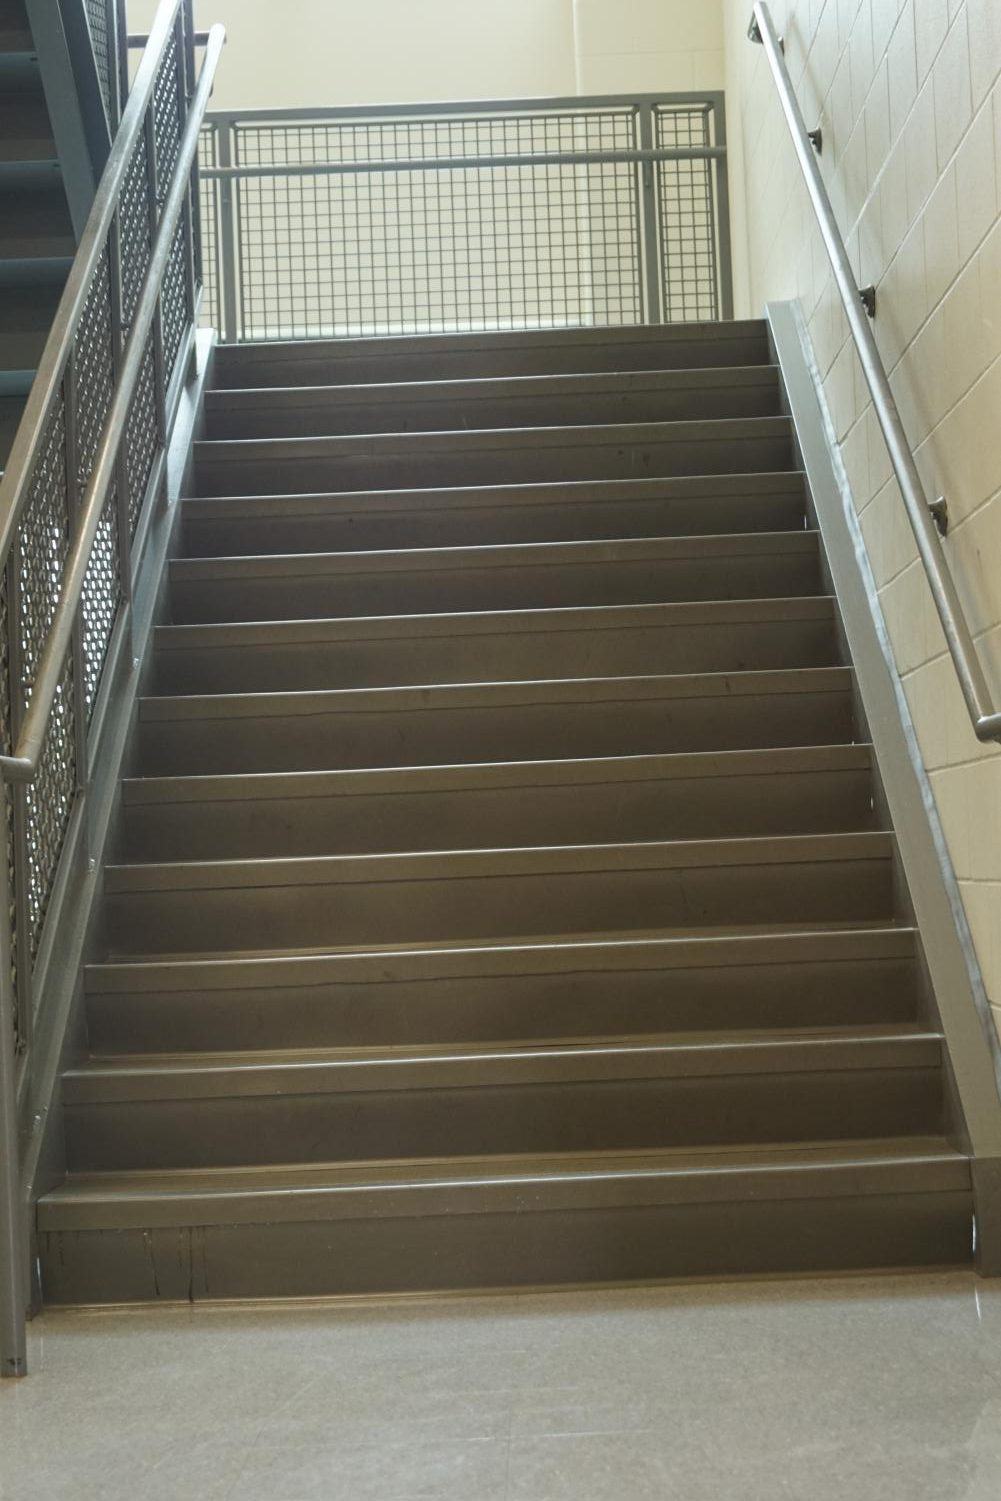 When senior Emma johnson thinks about difficulties with her arthiritis, the stairs are the first thing that come to mind.